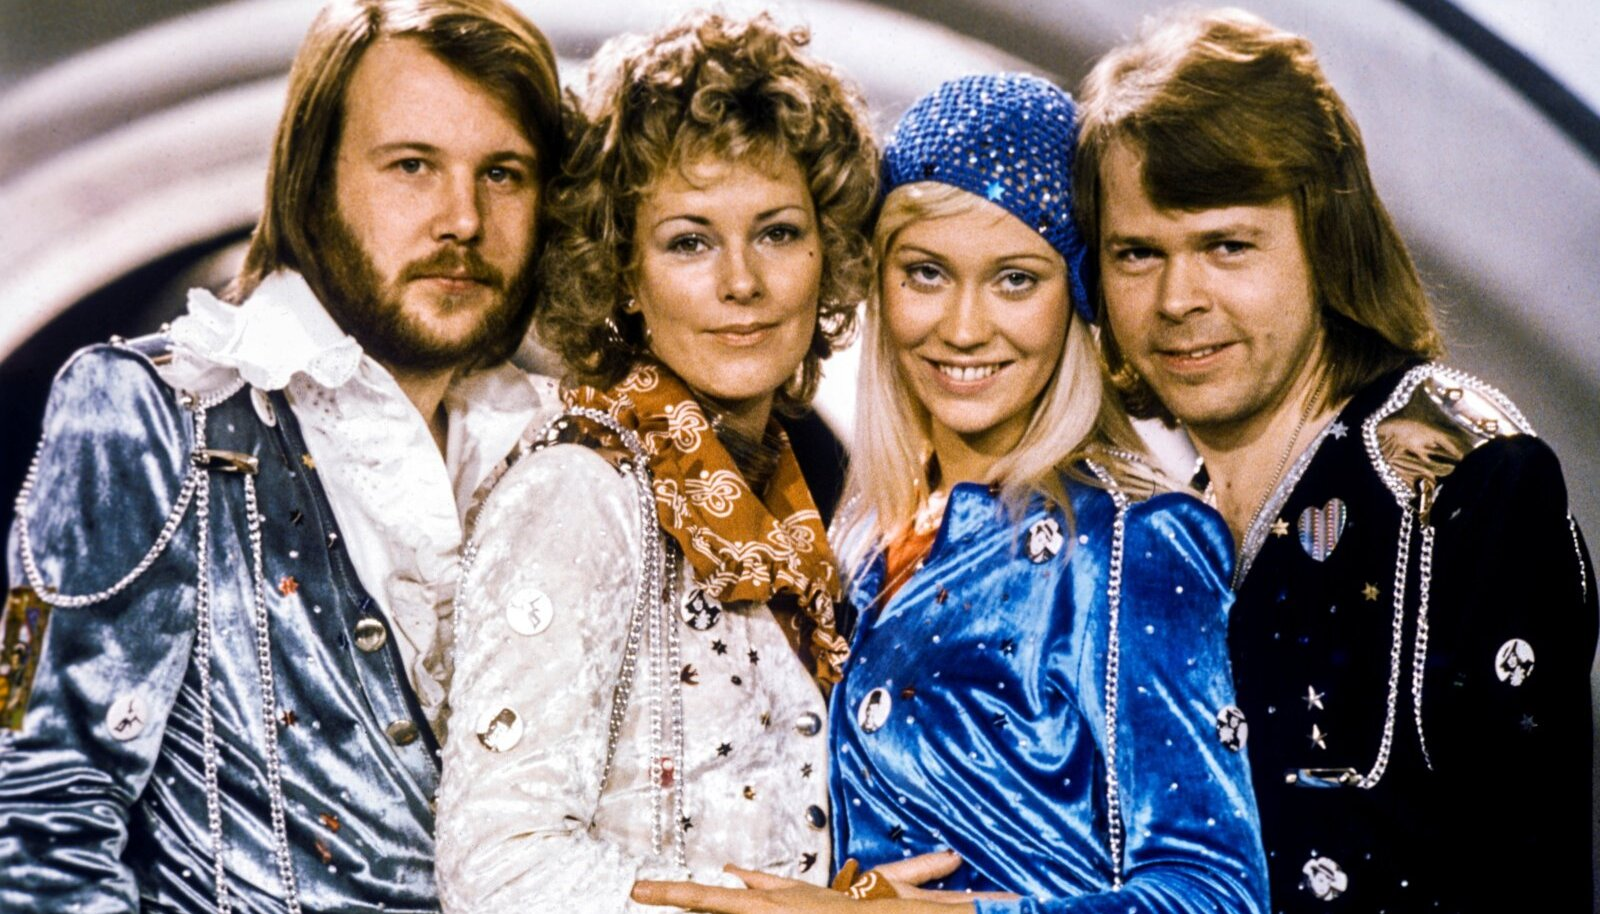 """FILE PHOTO: Swedish pop group Abba: Benny Andersson, Anni-Frid Lyngstad, Agnetha Faltskog and Bjorn Ulvaeus pose after winning the Swedish branch of the Eurovision Song Contest with their song """"Waterloo\"""